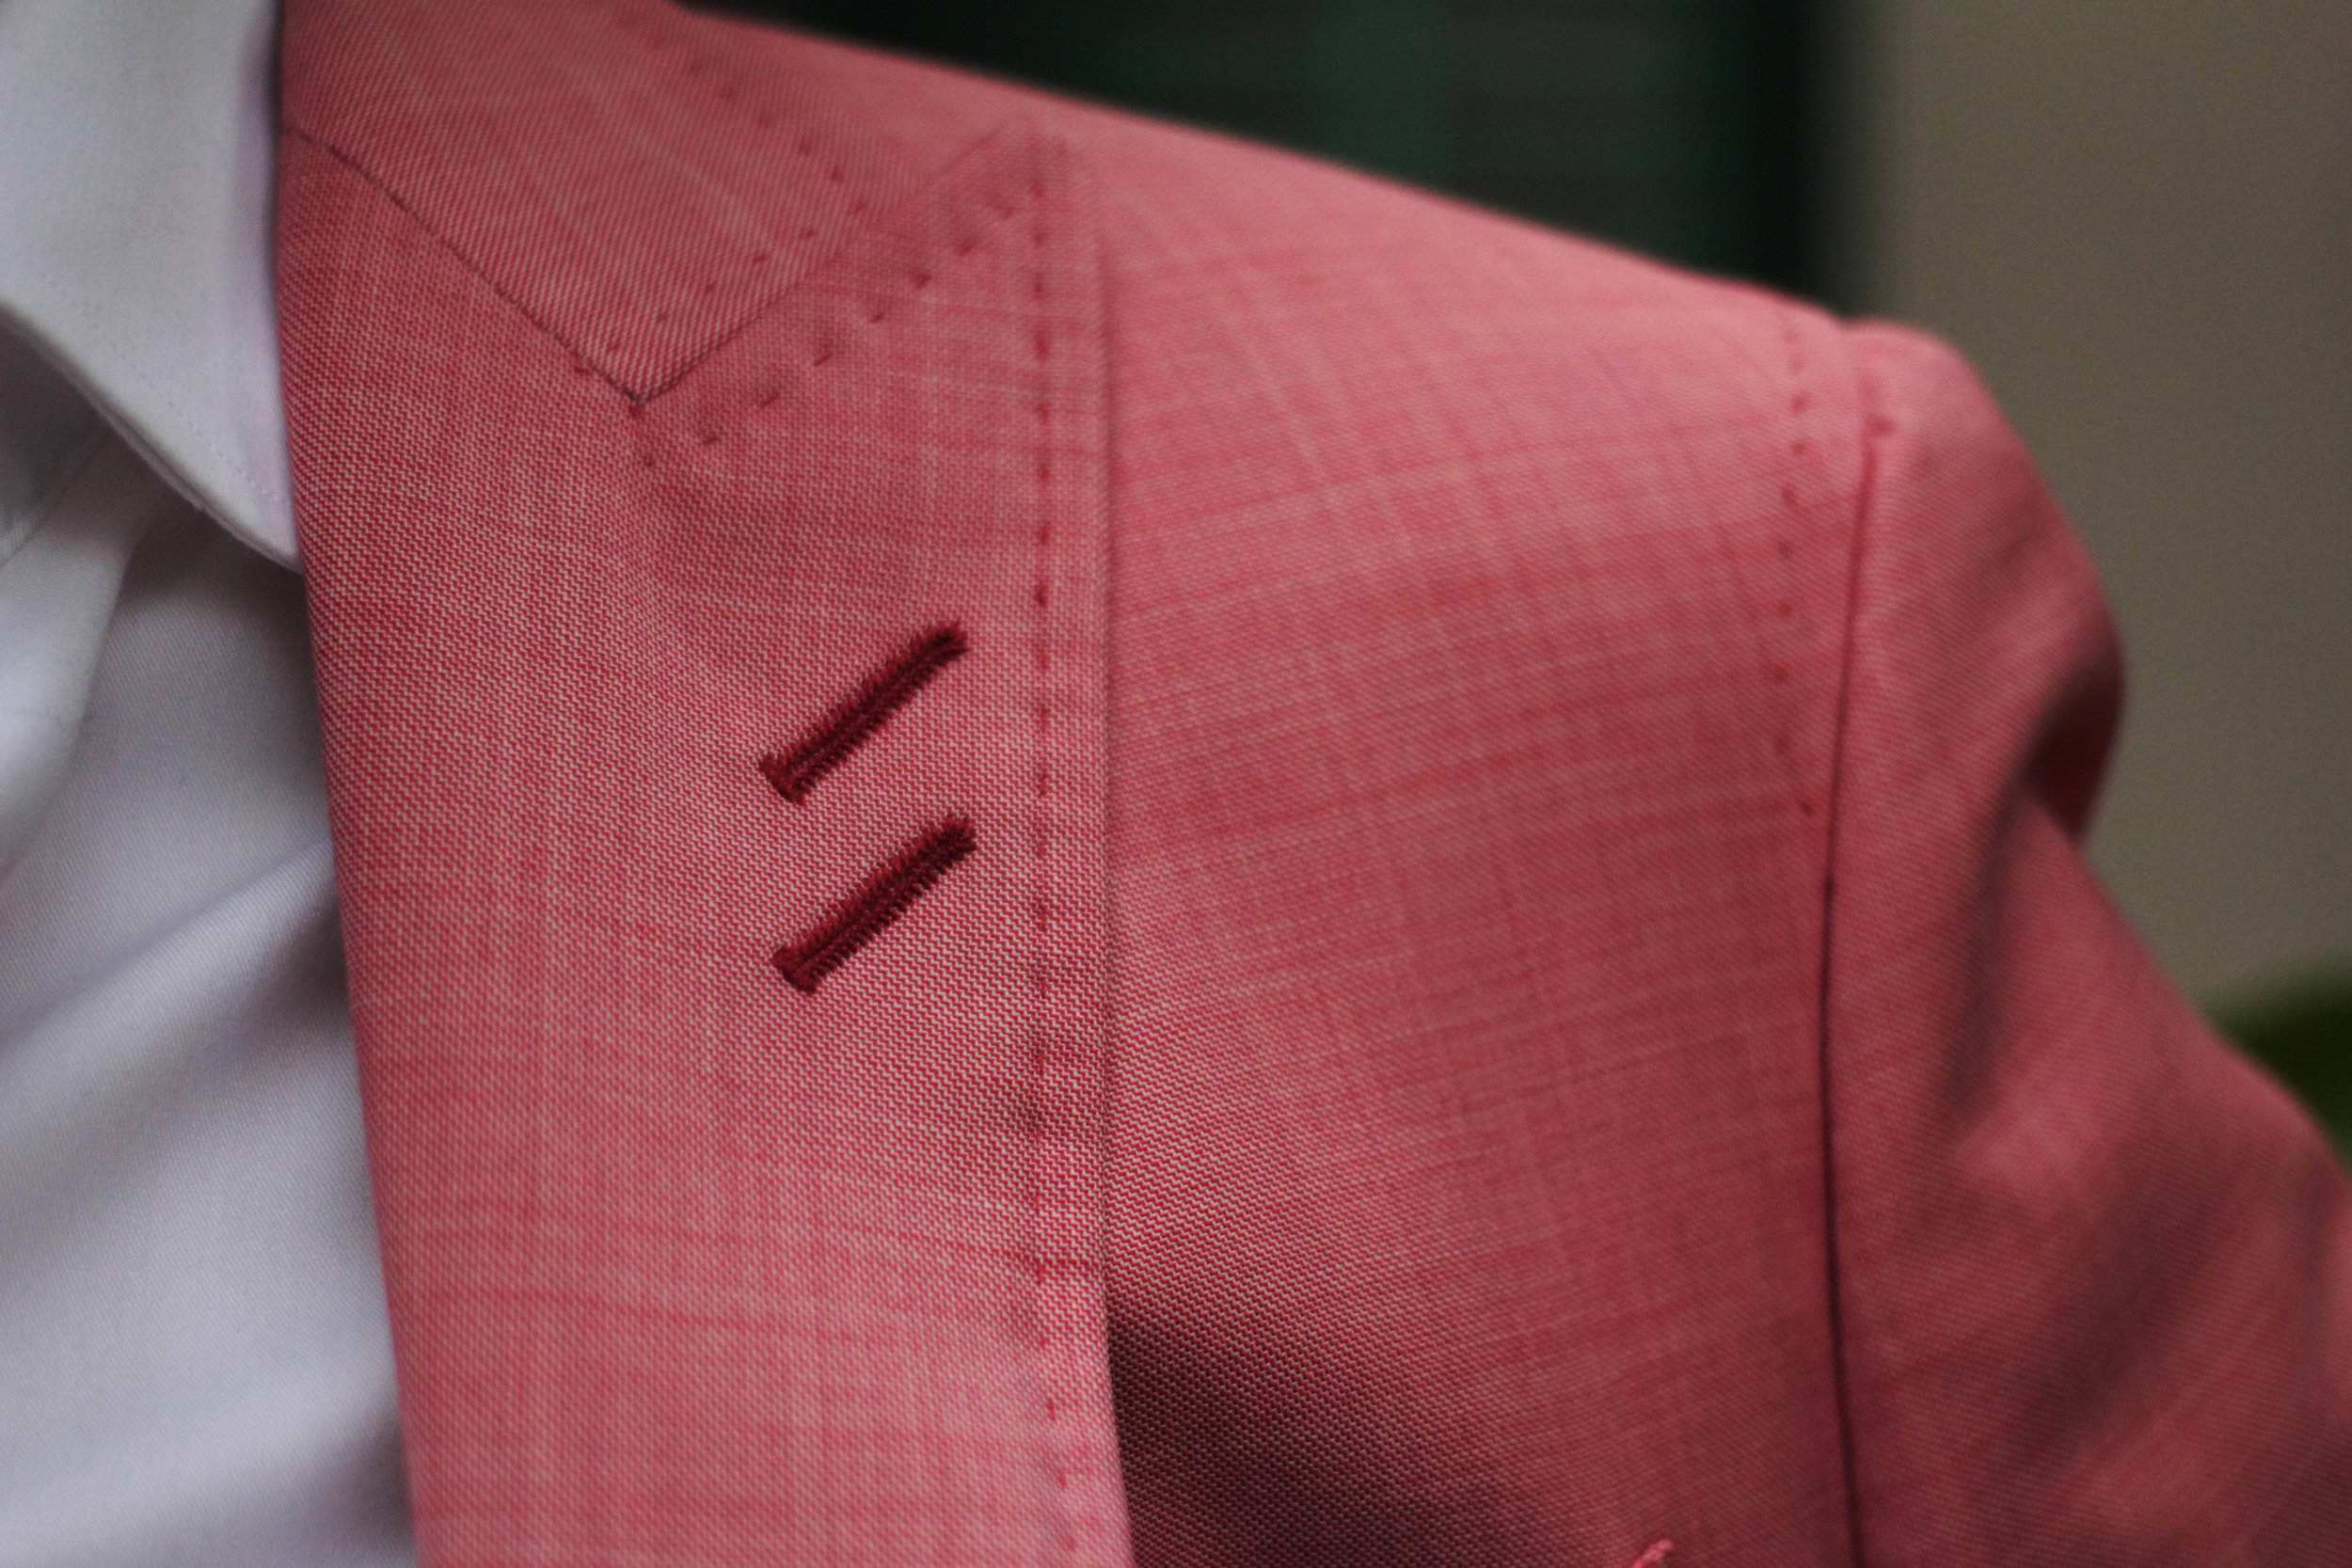 SPECIALLY MADE Double Lapel ButtonsHoles for a more upbeat look.